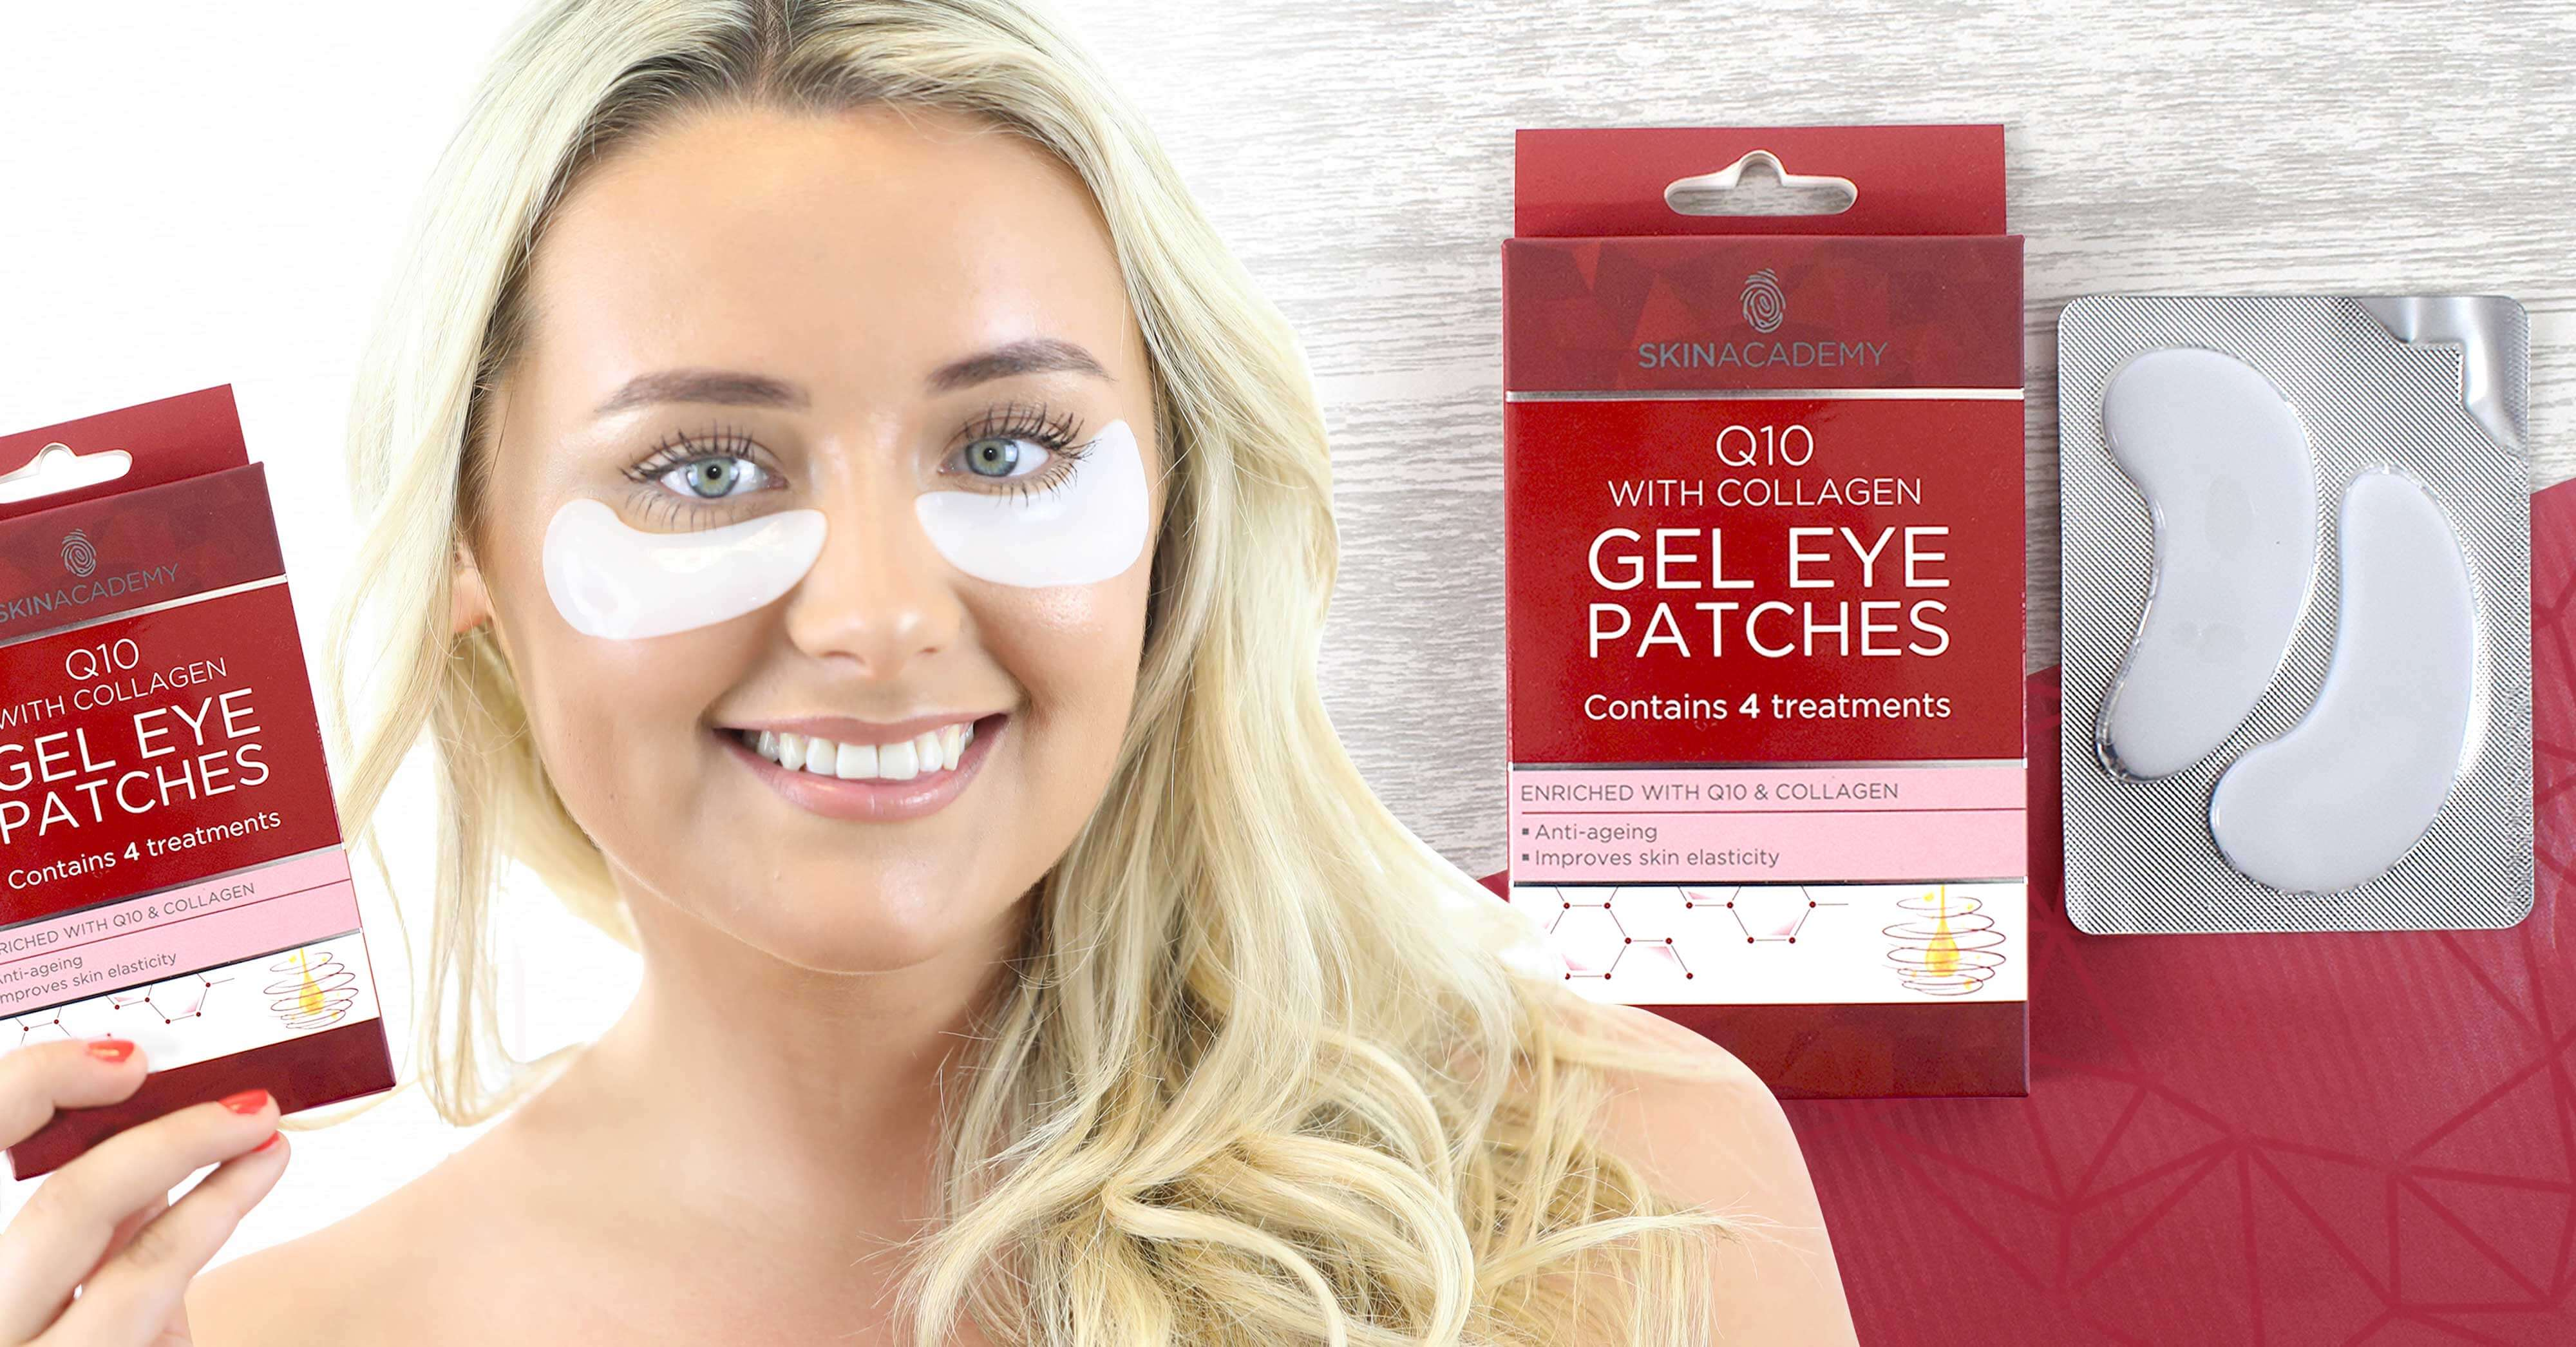 Gel Eye Patches Q10 Skin Academy ISA Mobile